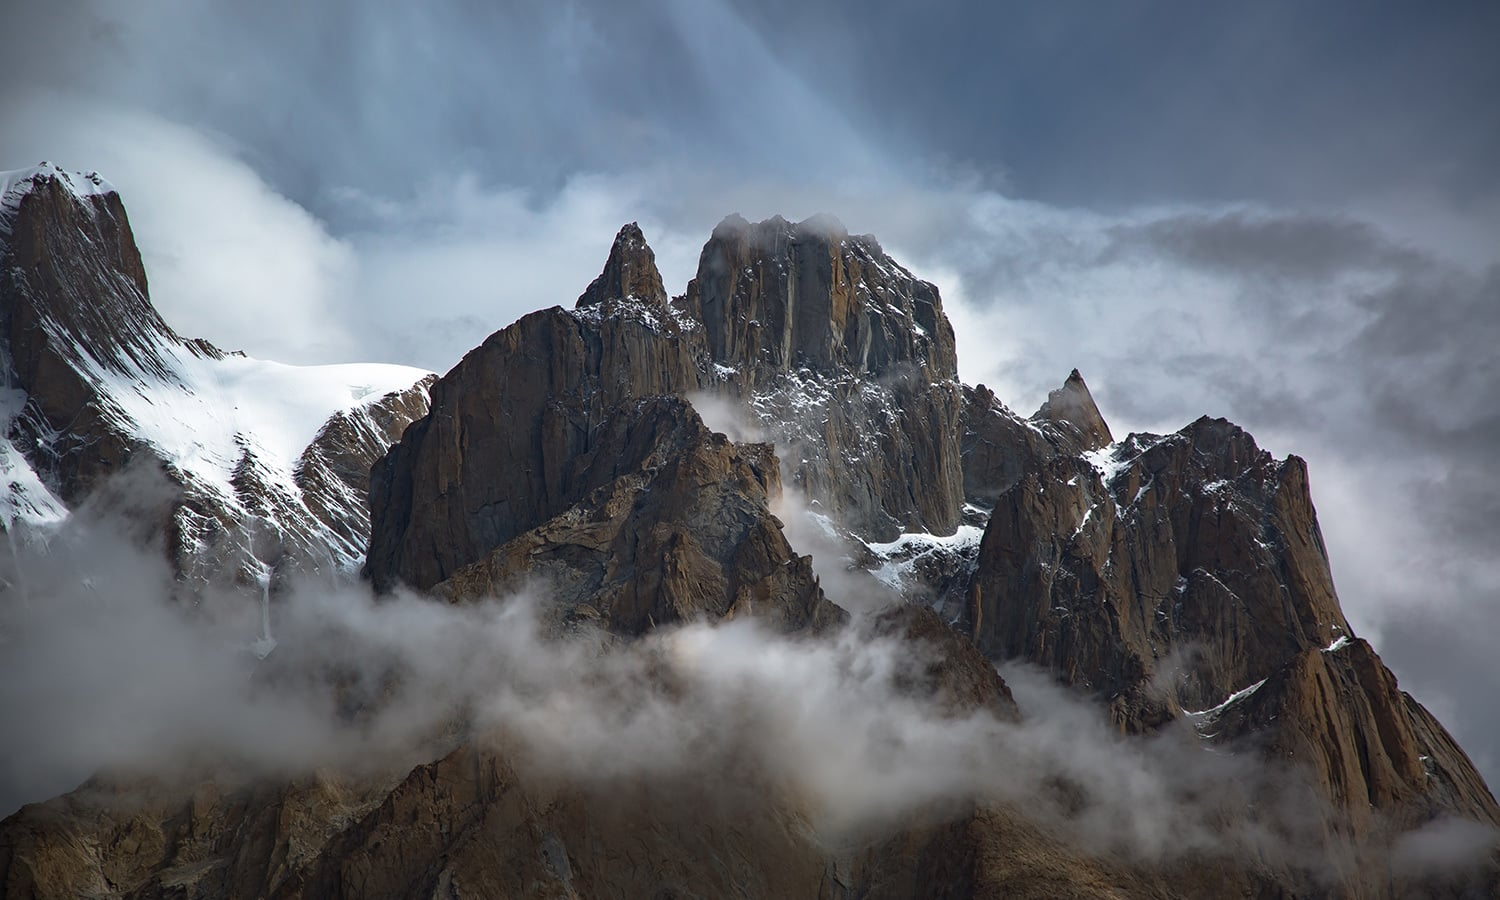 summit rocks of Trango Group.